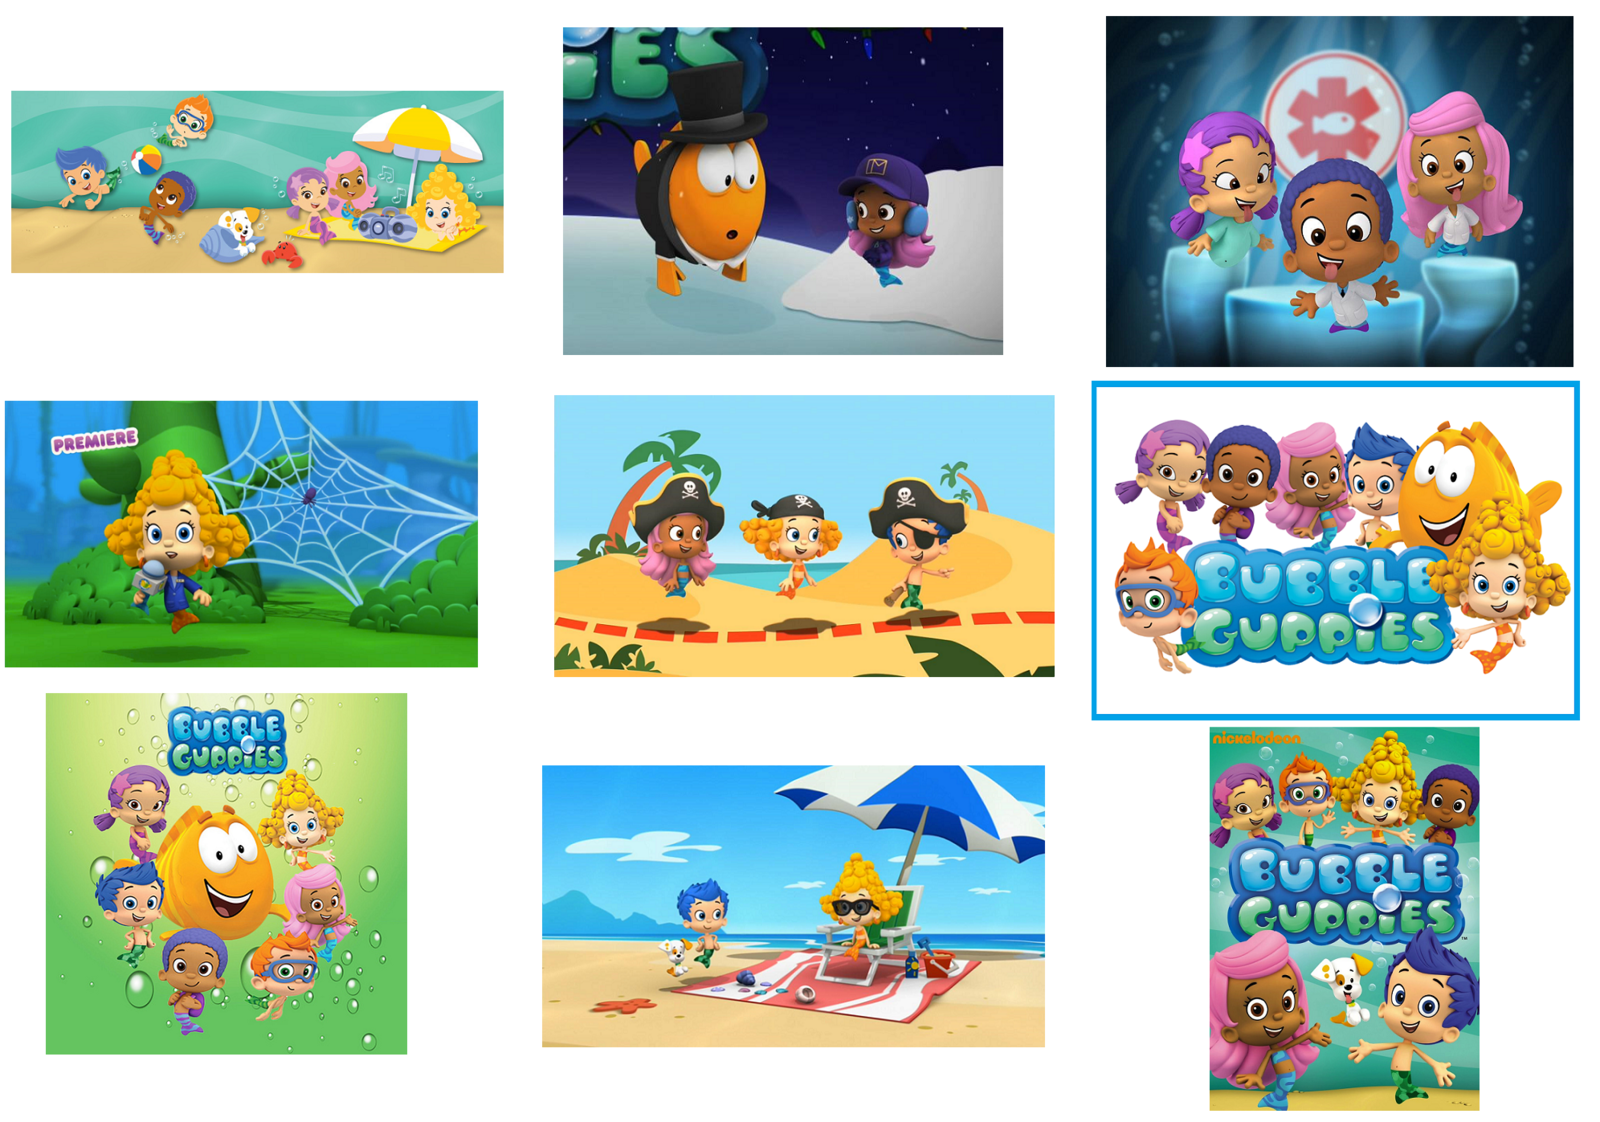 Bubble guppies stickers party supplies decorations labels favors gifts other - Bubble guppies party favors ideas ...